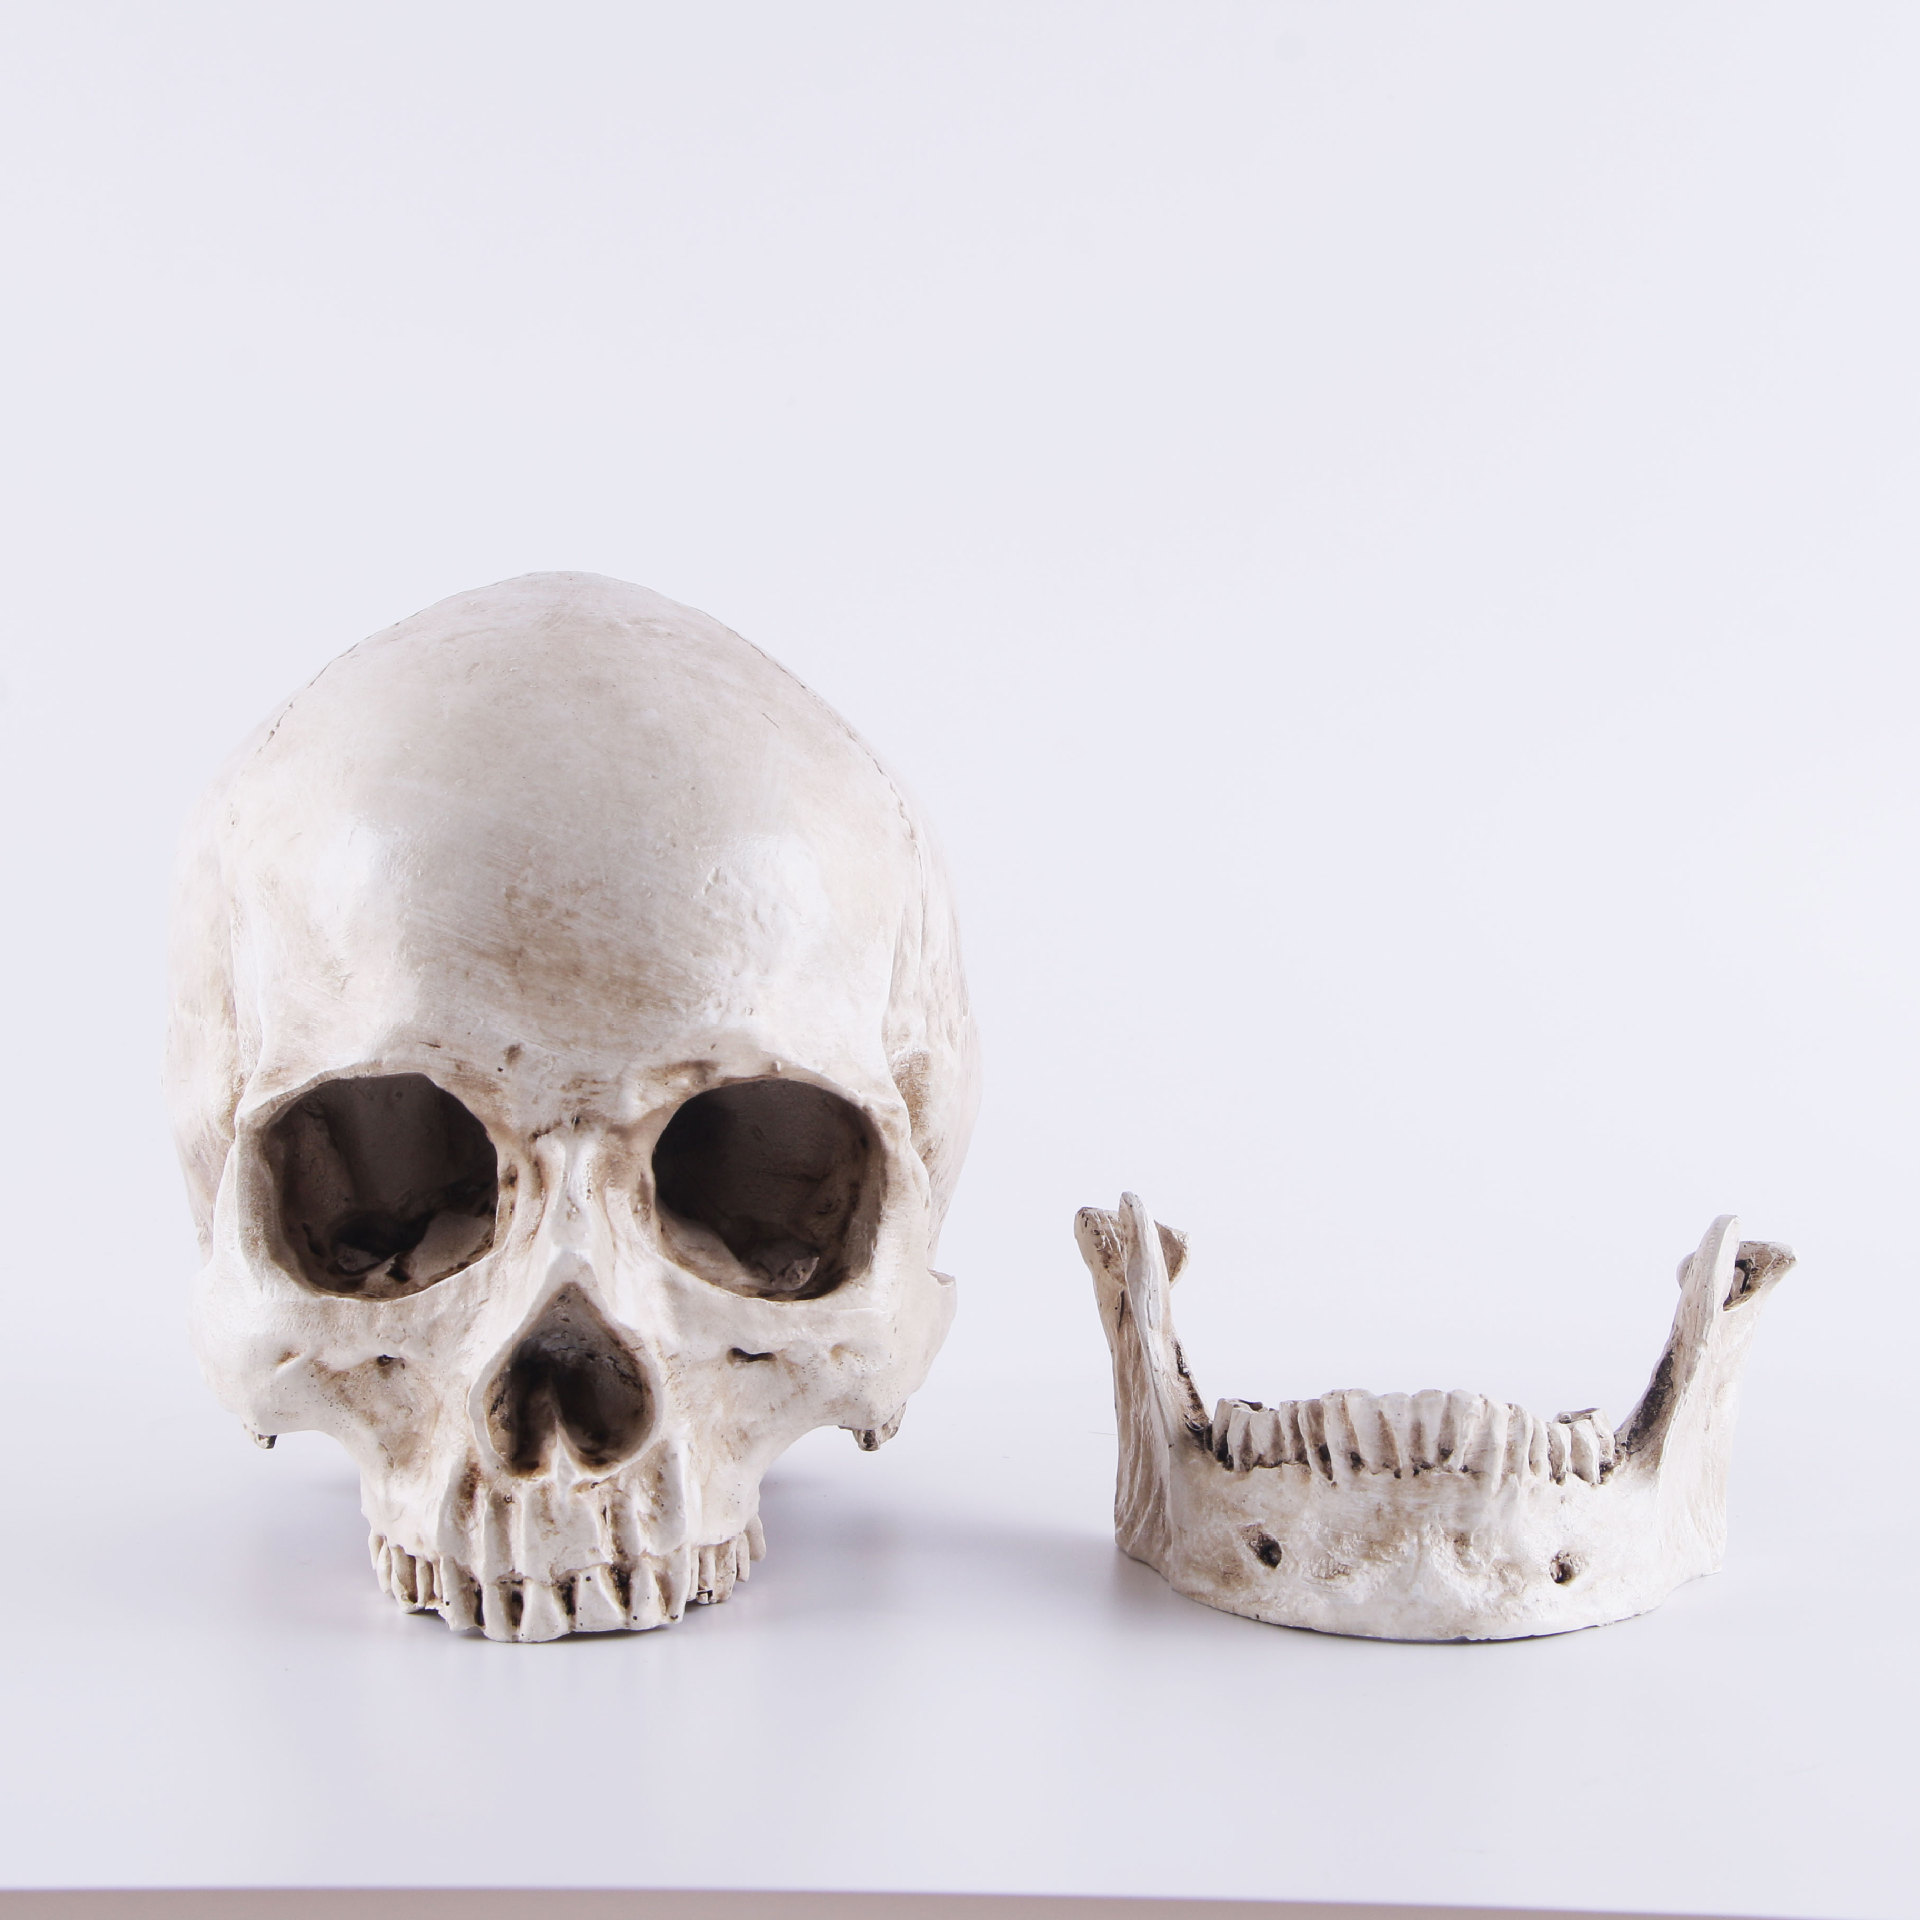 1:1 Resin Skull Sculpture Education And Painting Dedicated Medical Model Realistic Lifesize Home Decoration Accessories